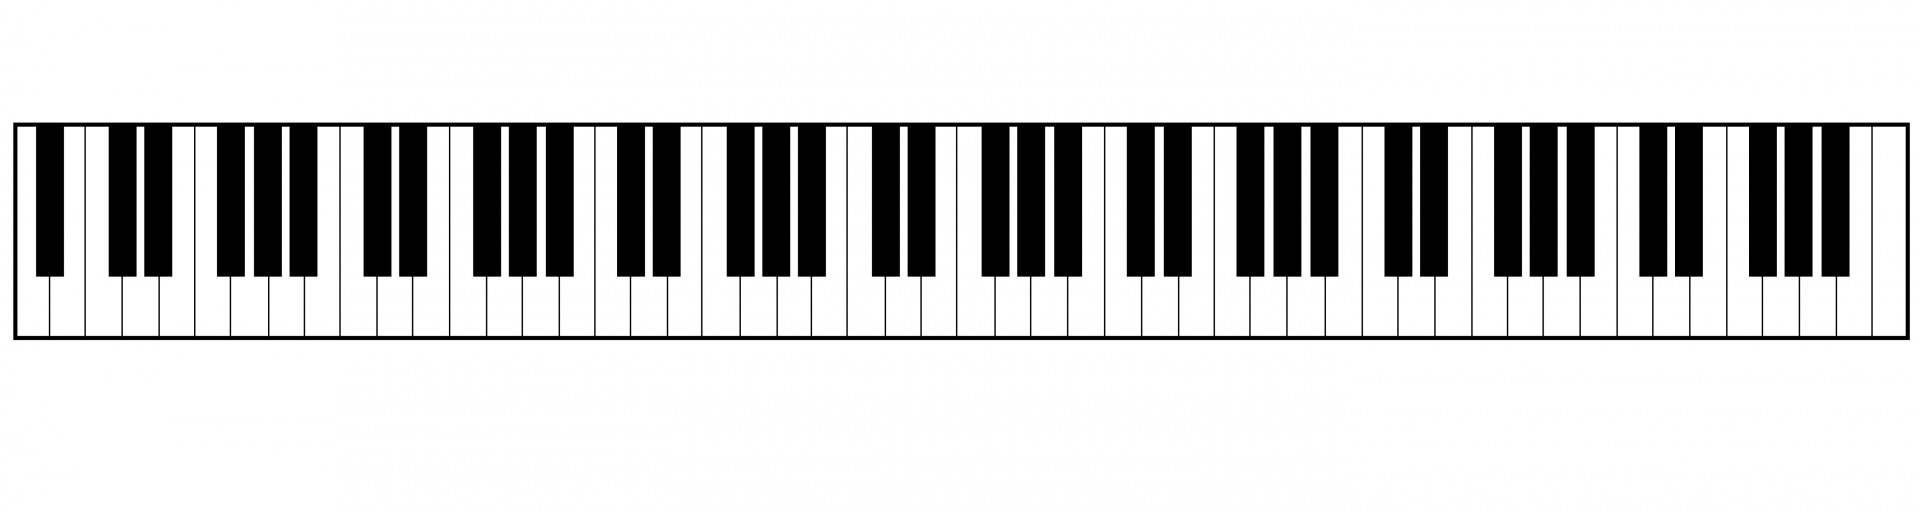 svg transparent download Keyboard free download best. Piano key clipart.